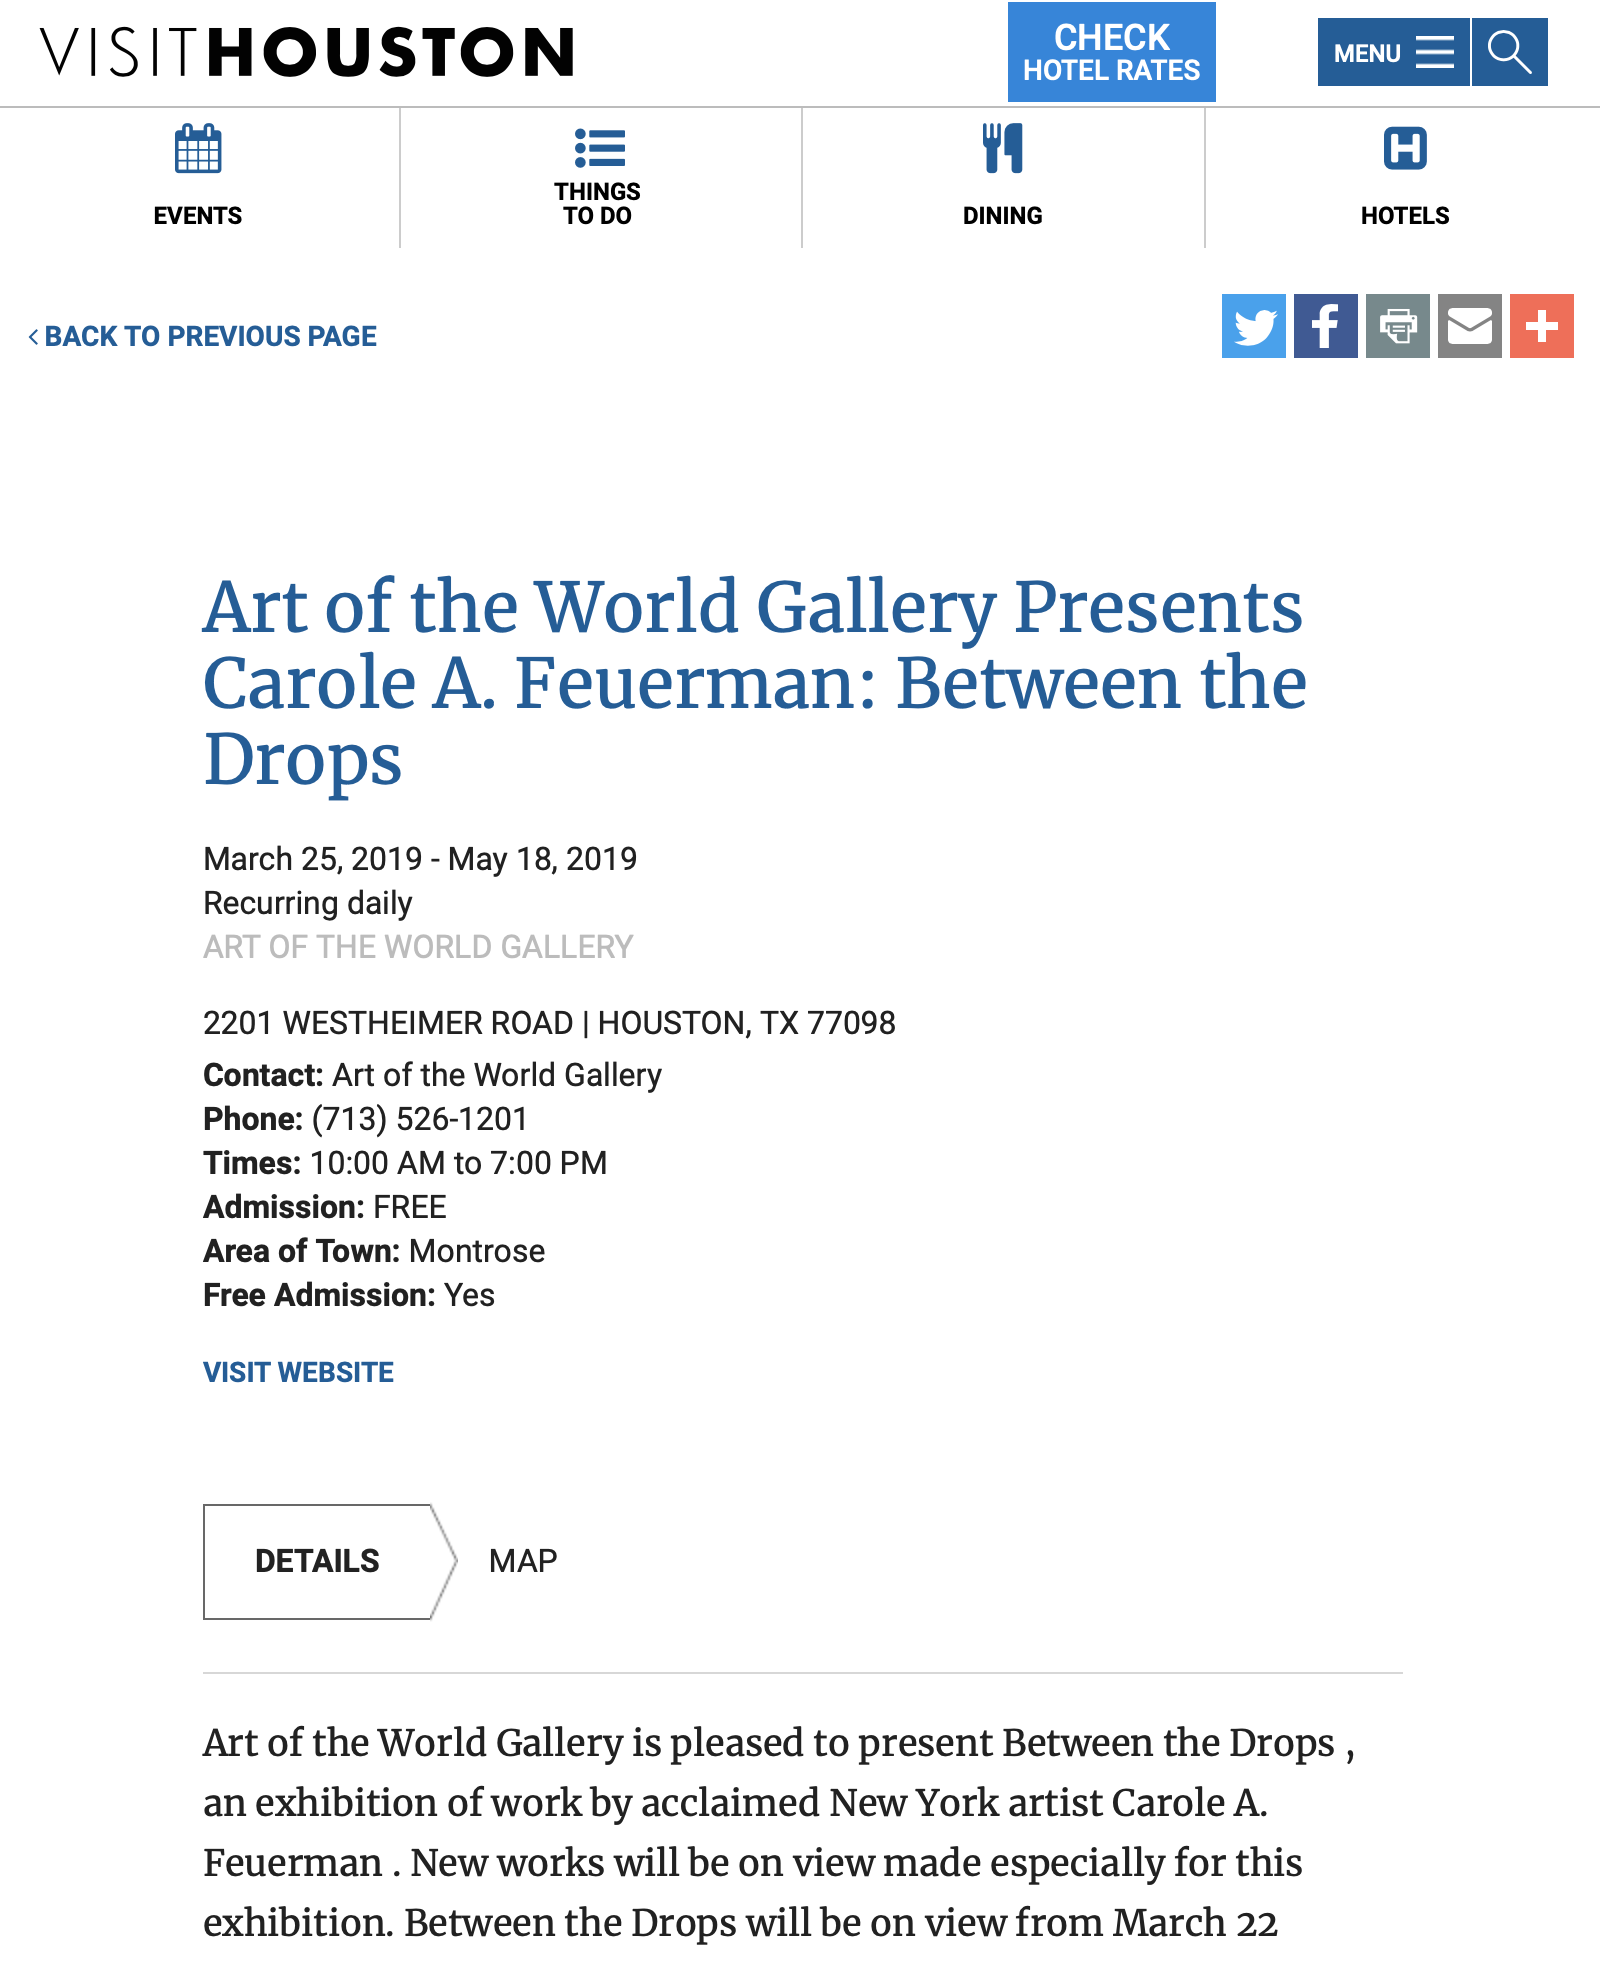 Art of the World Gallery Presents Carole A. Feuerman: Between the Drops